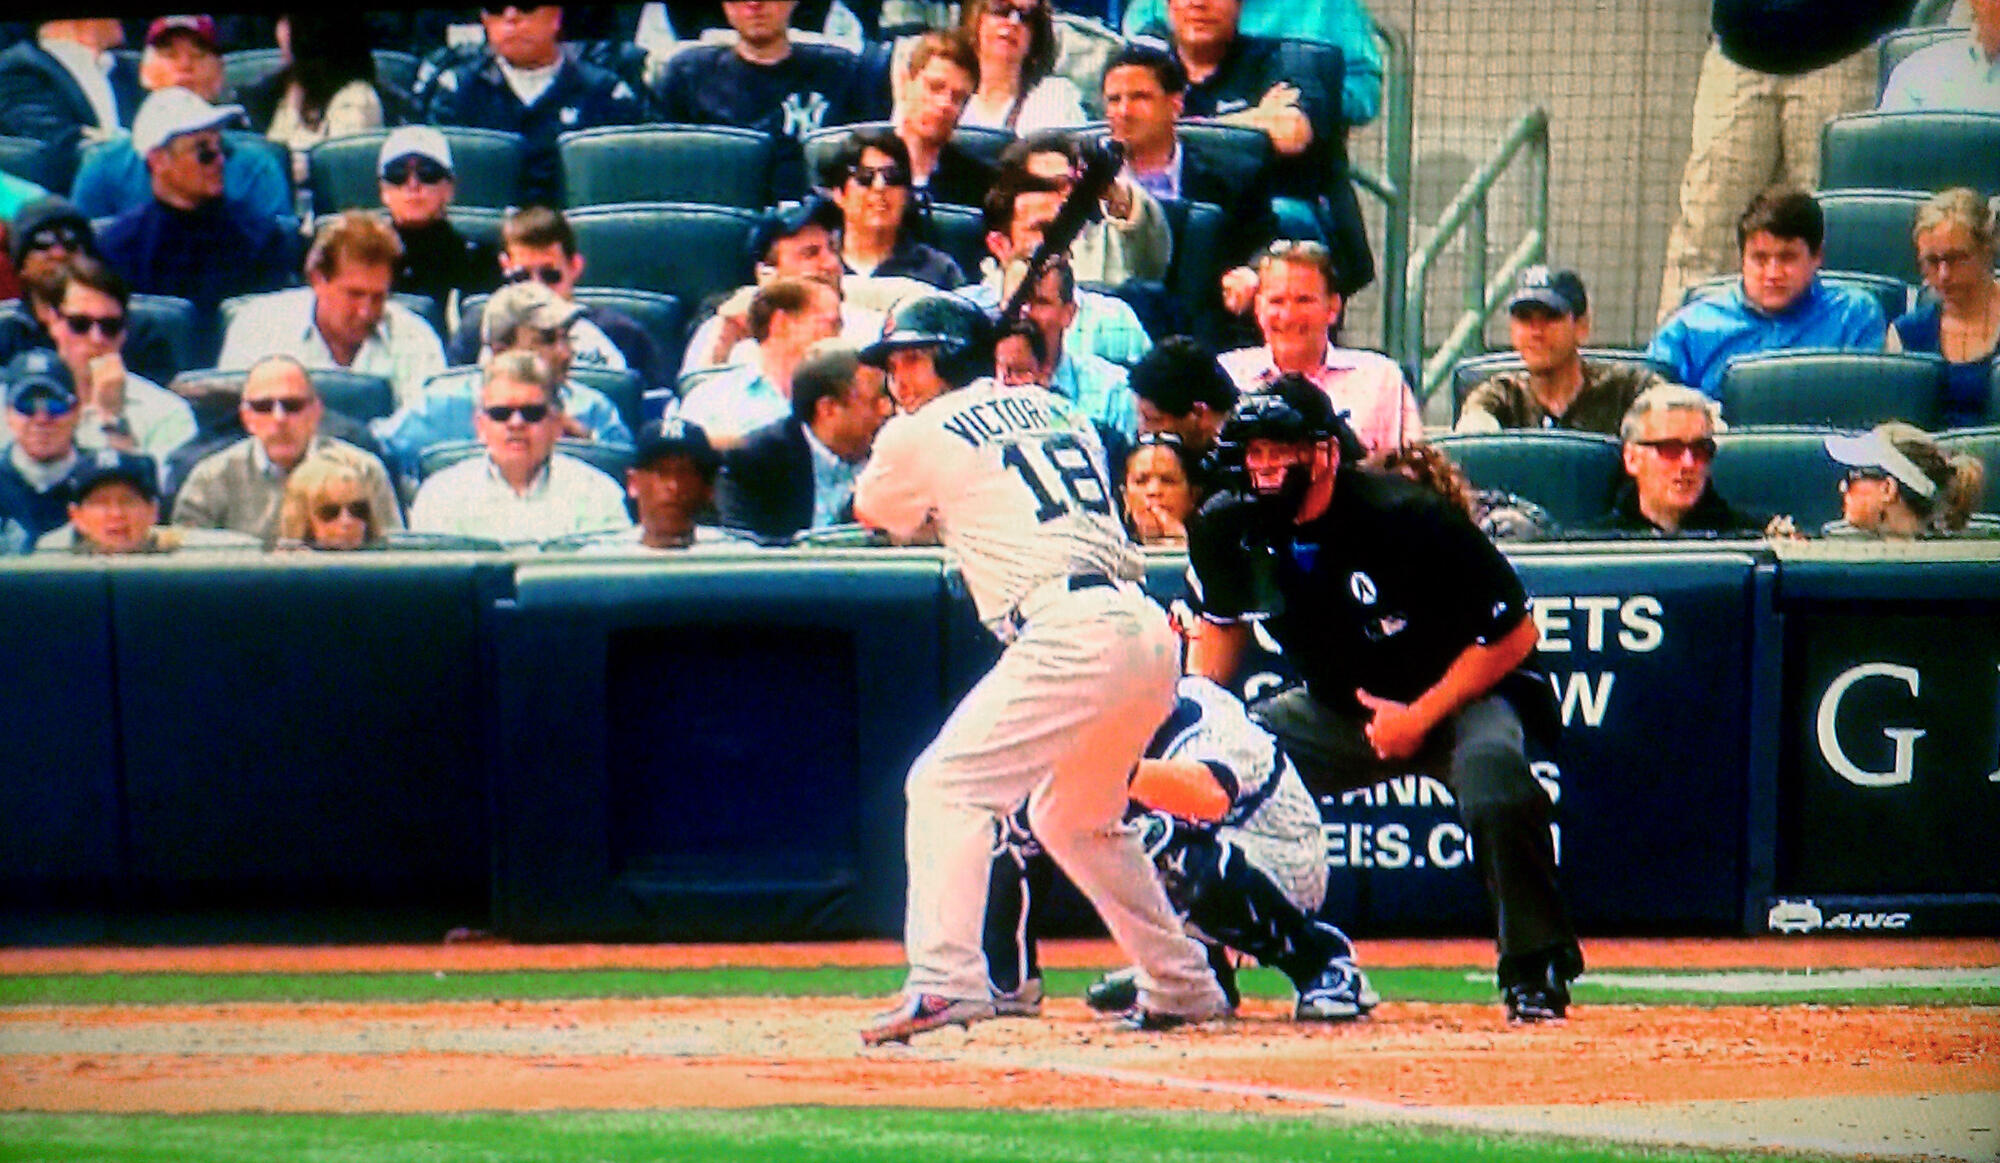 Keith sitting with two women Opening Day 2013 Yankees vs Redsox at Yankee Stadium 5